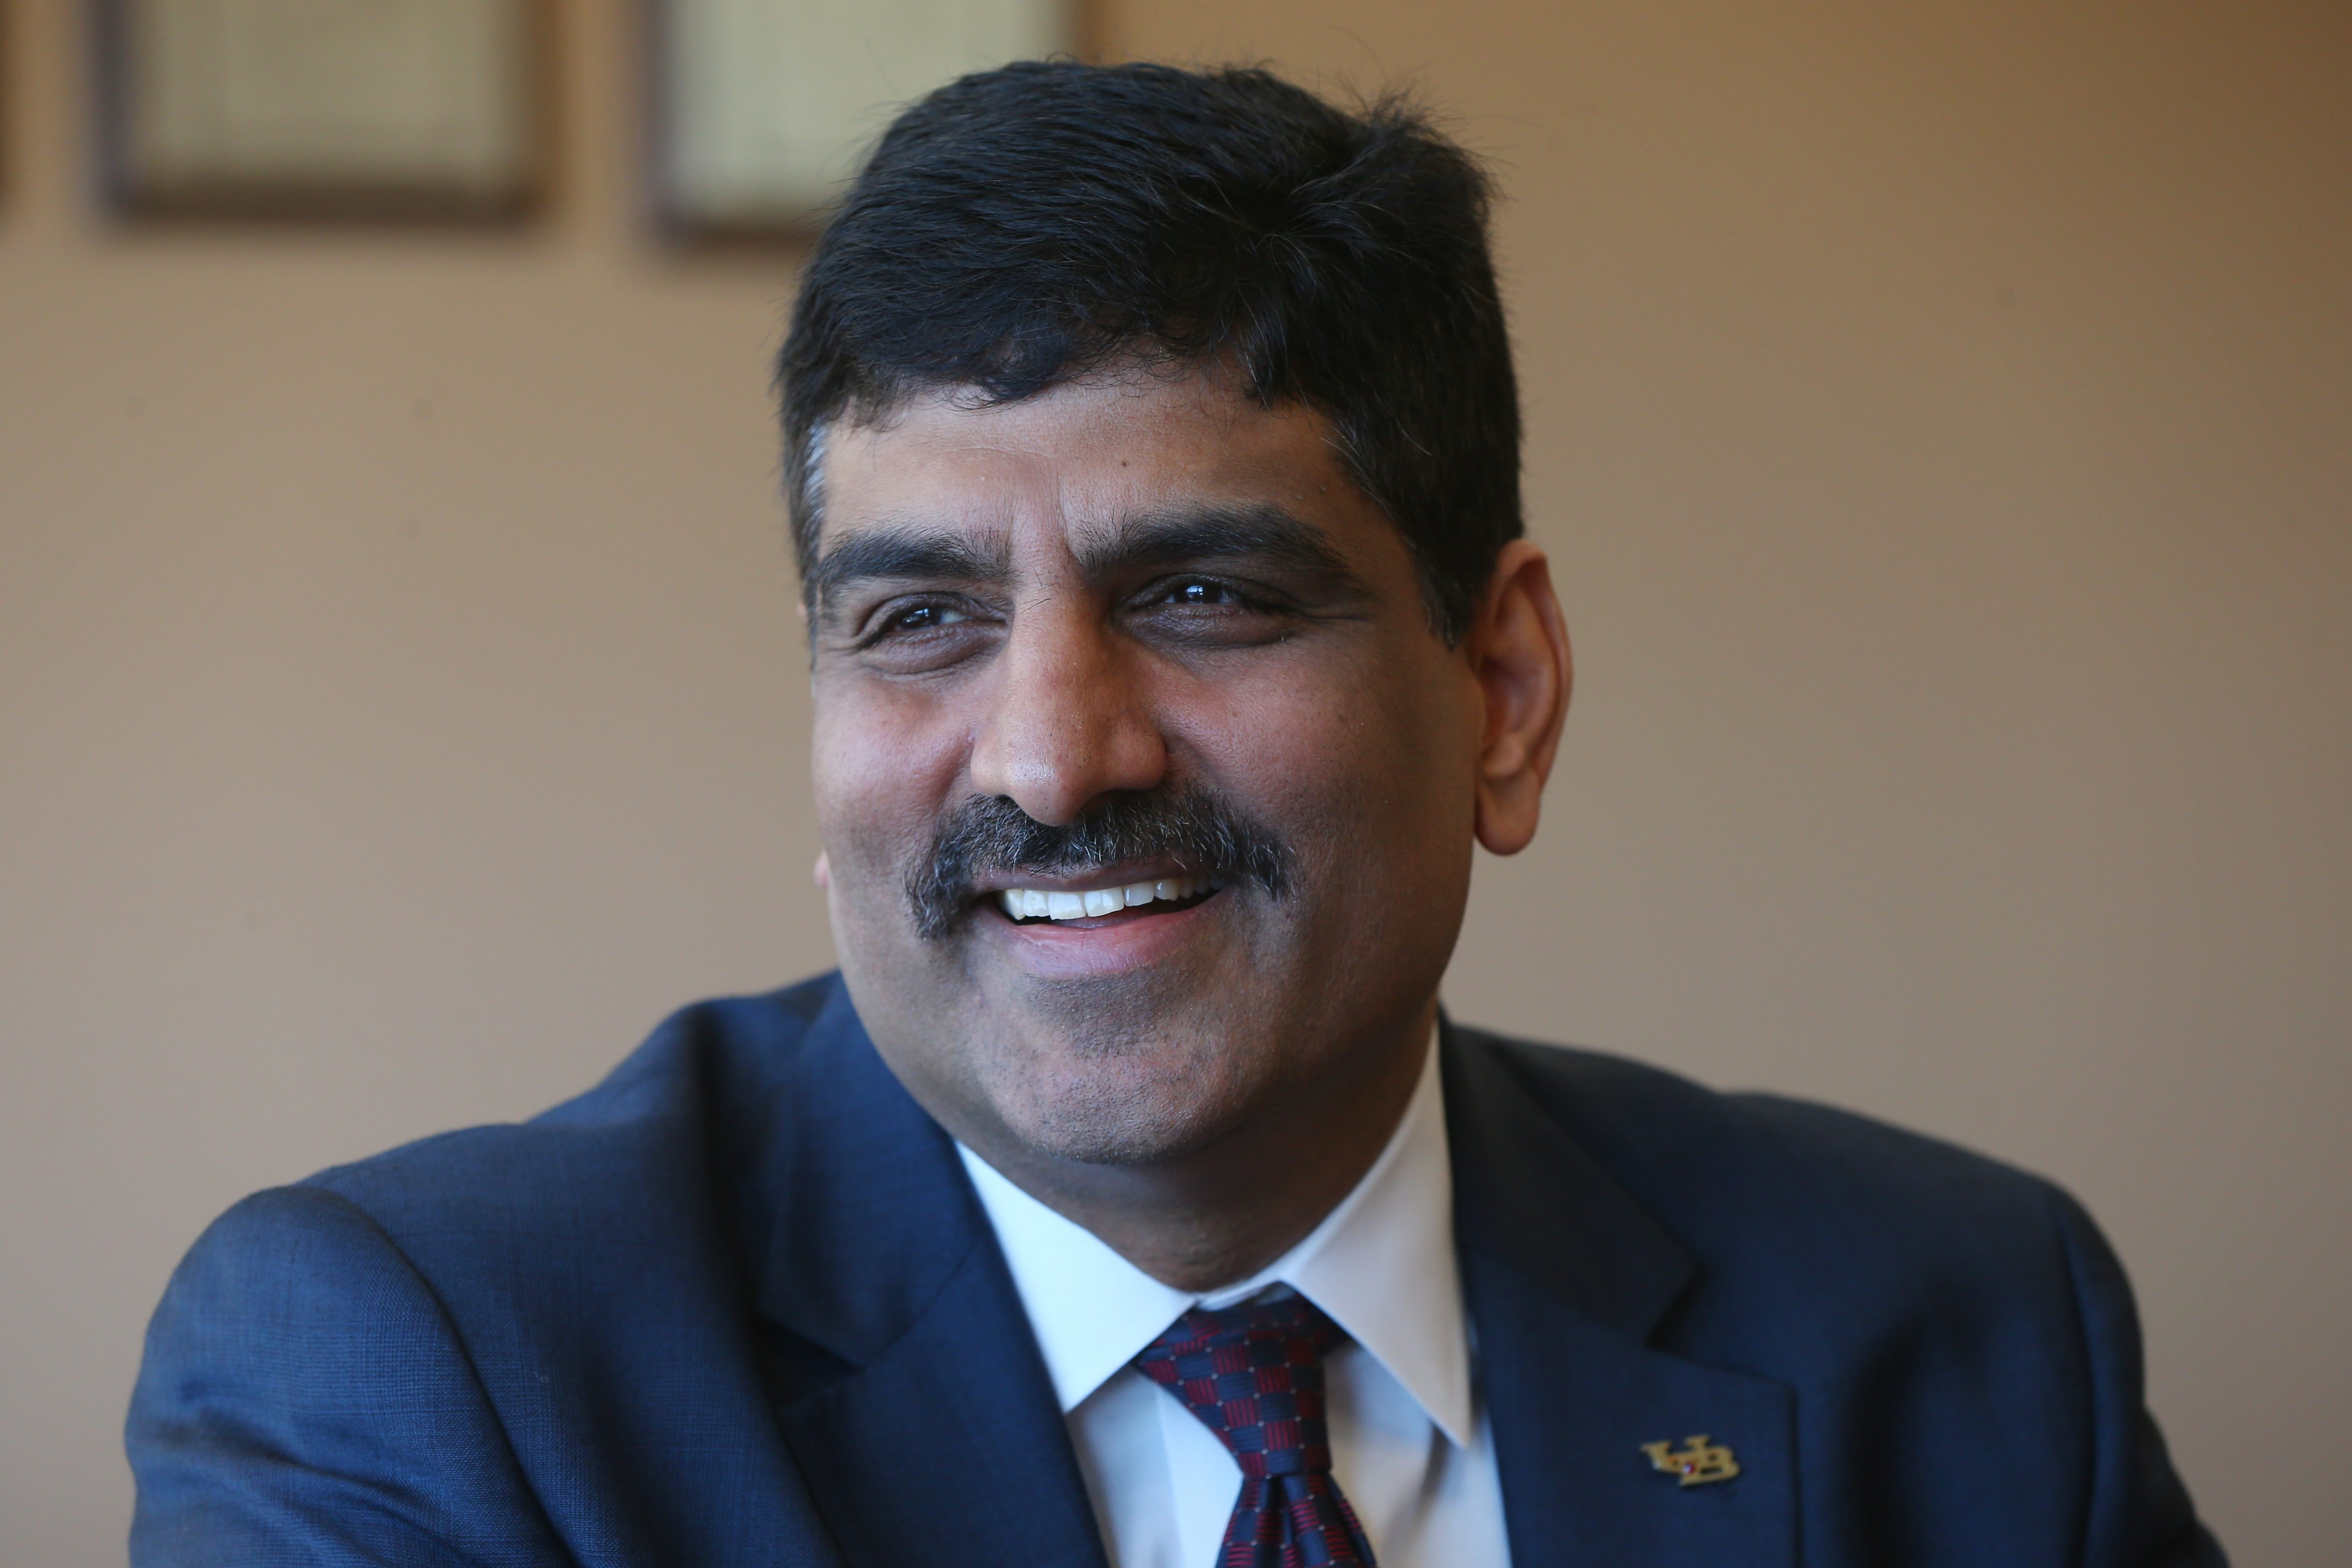 Venu Govindaraju, UB's interim vice president for research, says the region has made a smart bet on medical research.